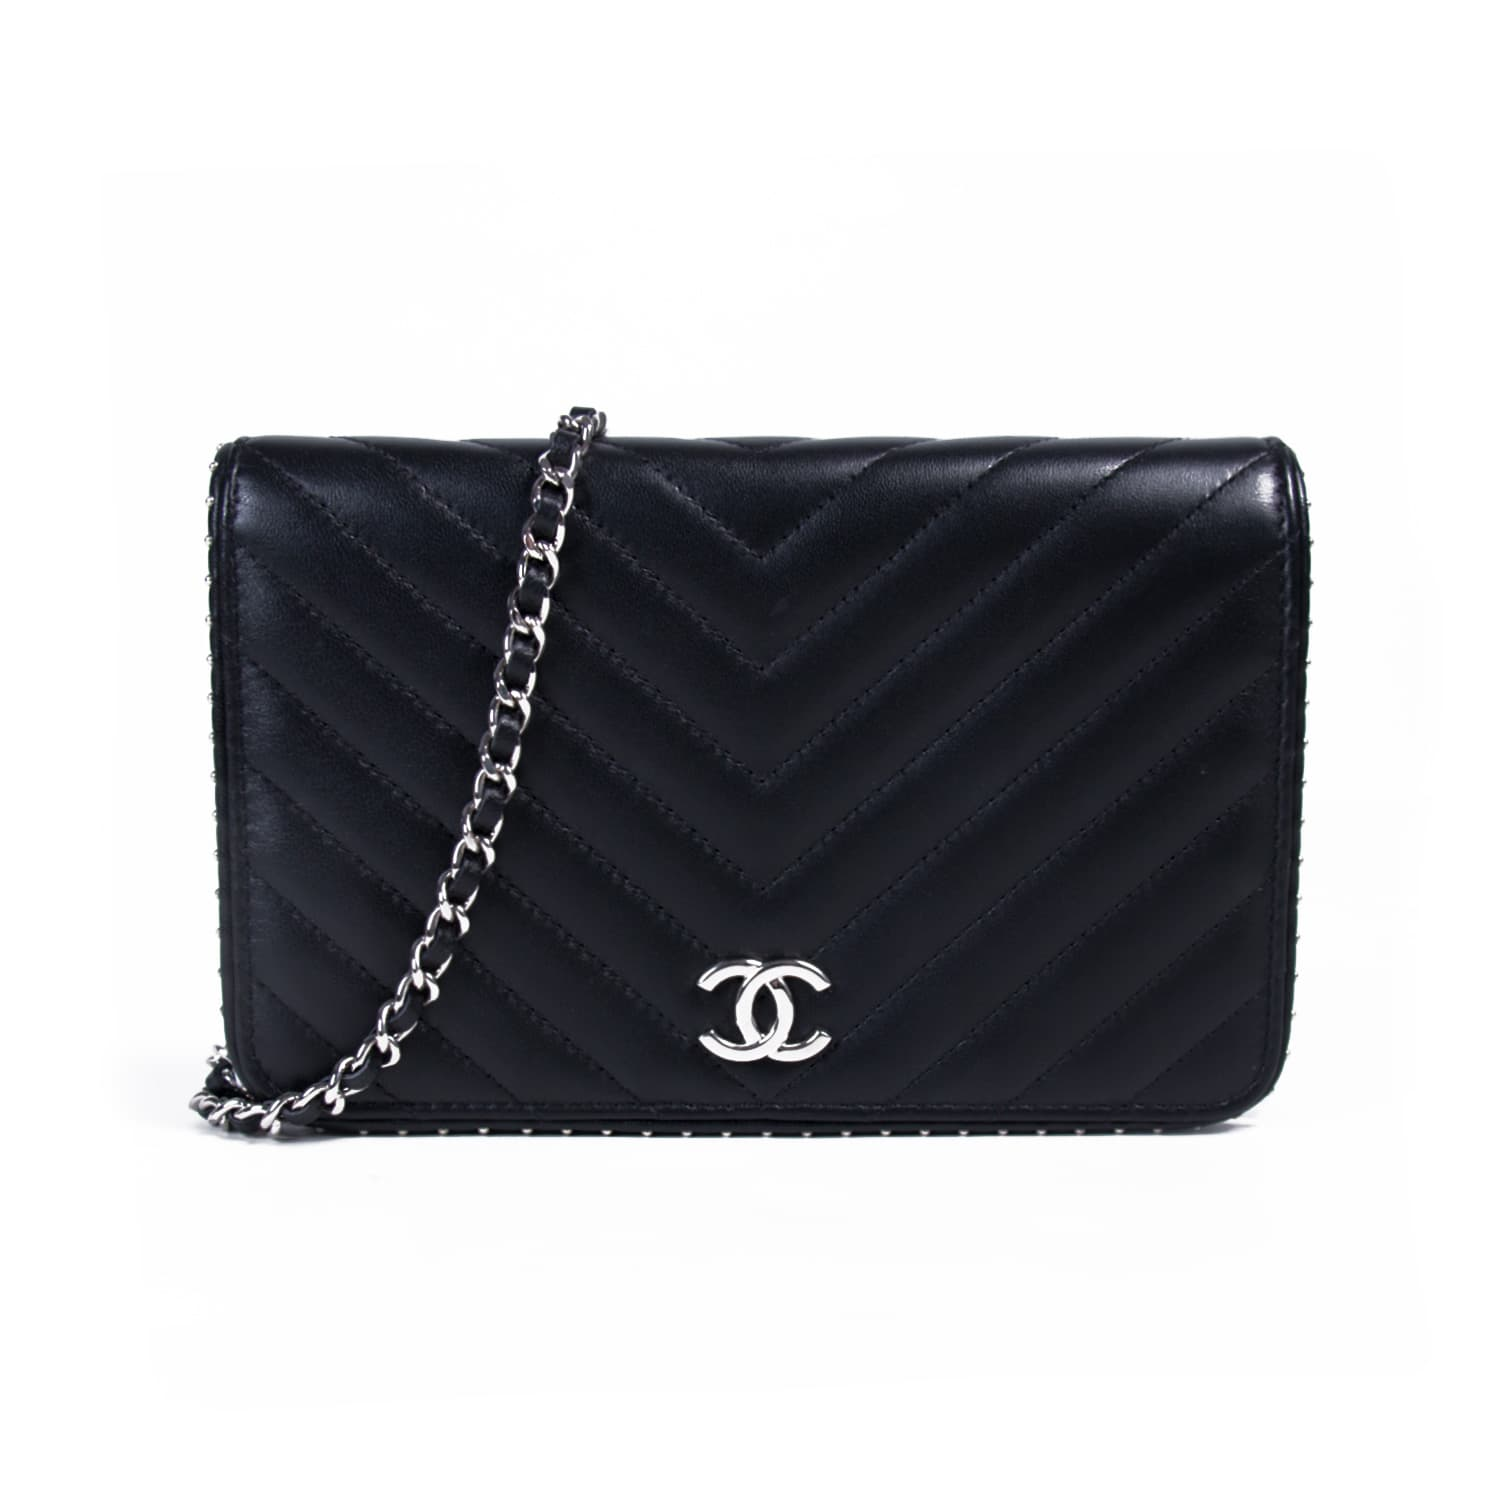 63326ce8a89 Shop authentic Chanel Studded Wallet on Chain at revogue for just USD  1